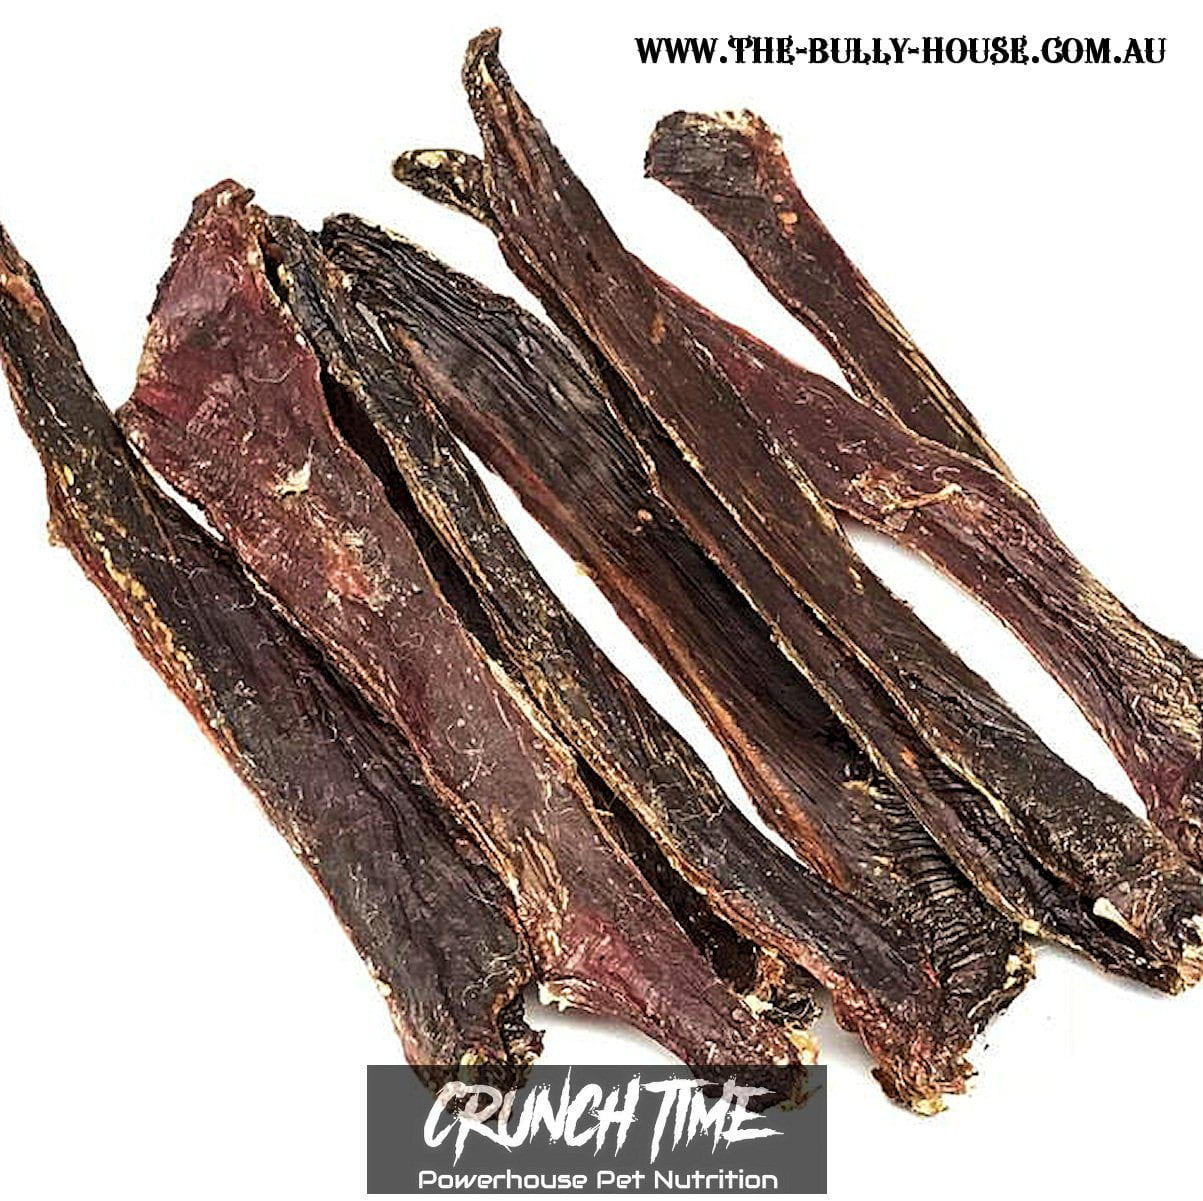 Kangaroo Chewy Straps - Crunch time - Dog Nutrition